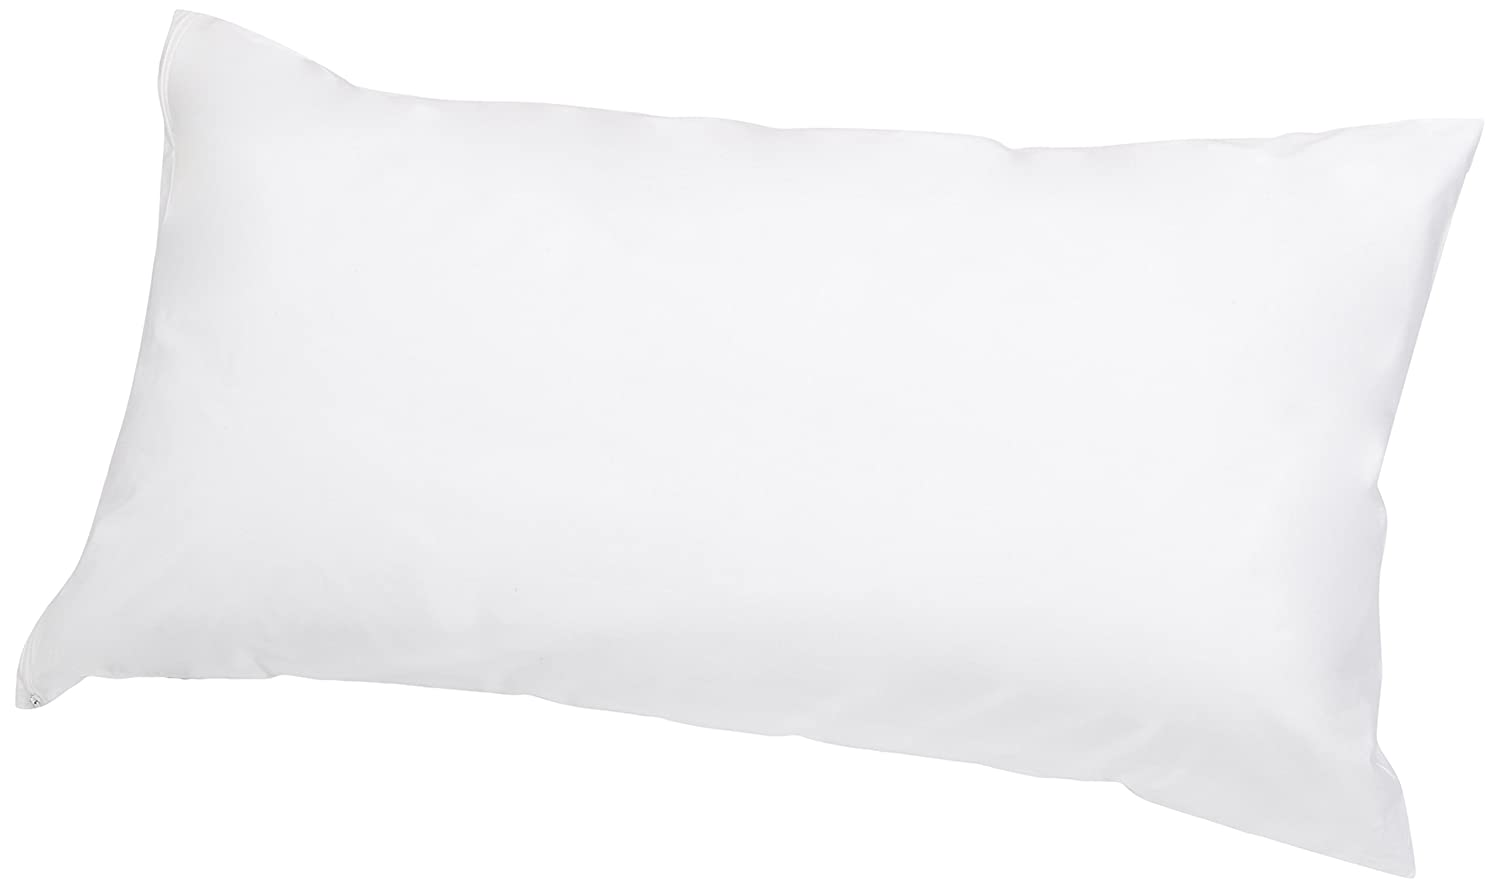 AmazonBasics Hypoallergenic Pillow Protector, White, Body AB-ALE-PC-WHT-BD